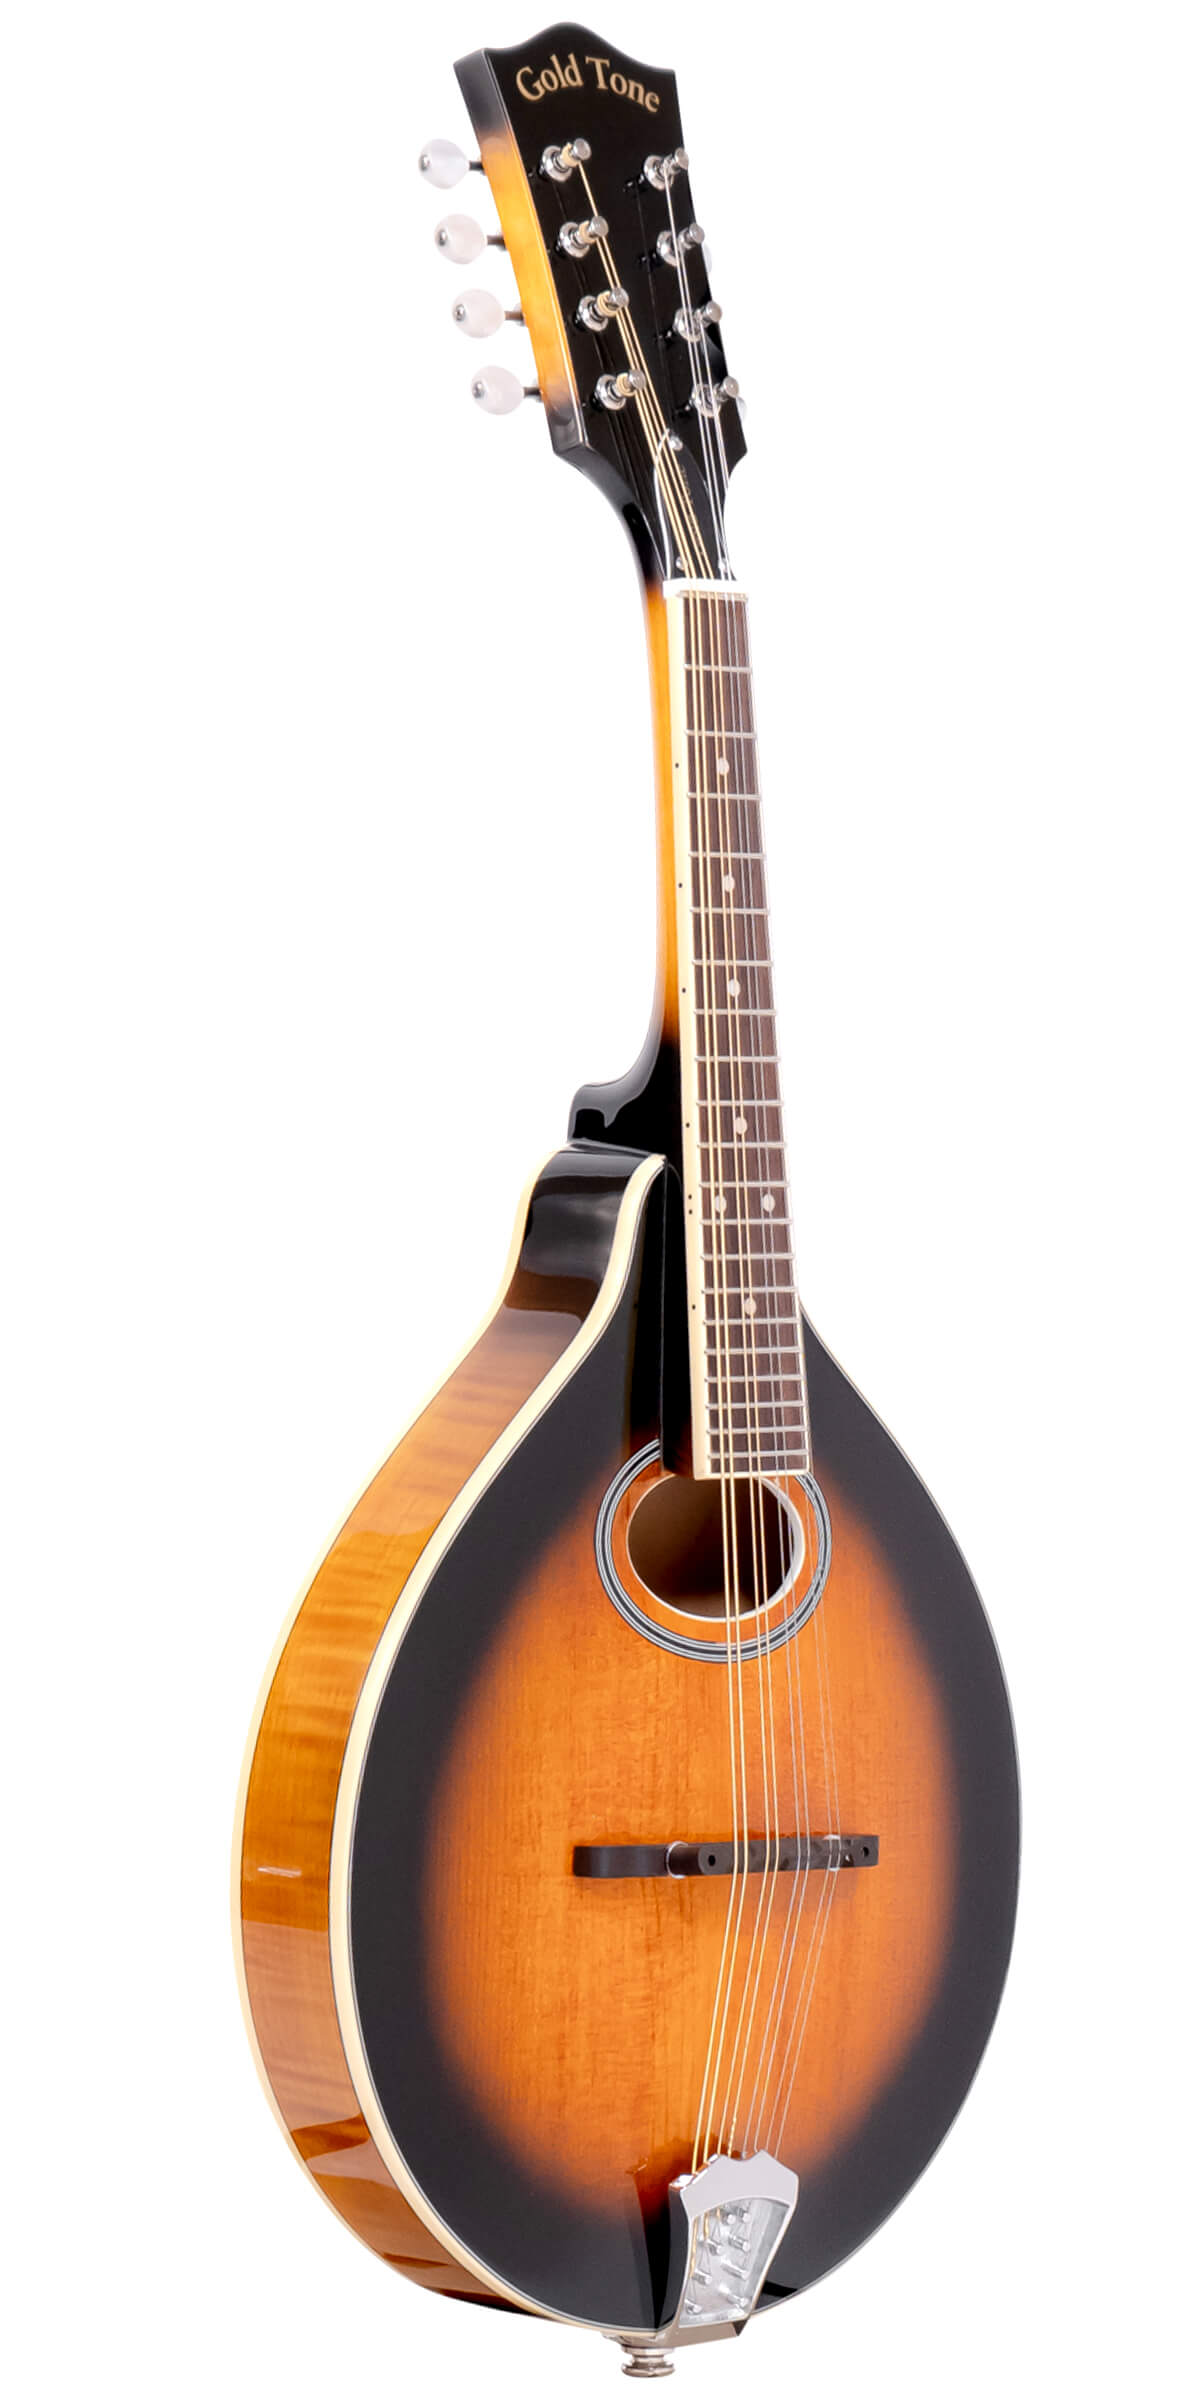 GM-50+: A-Style Mandolin with Pickup